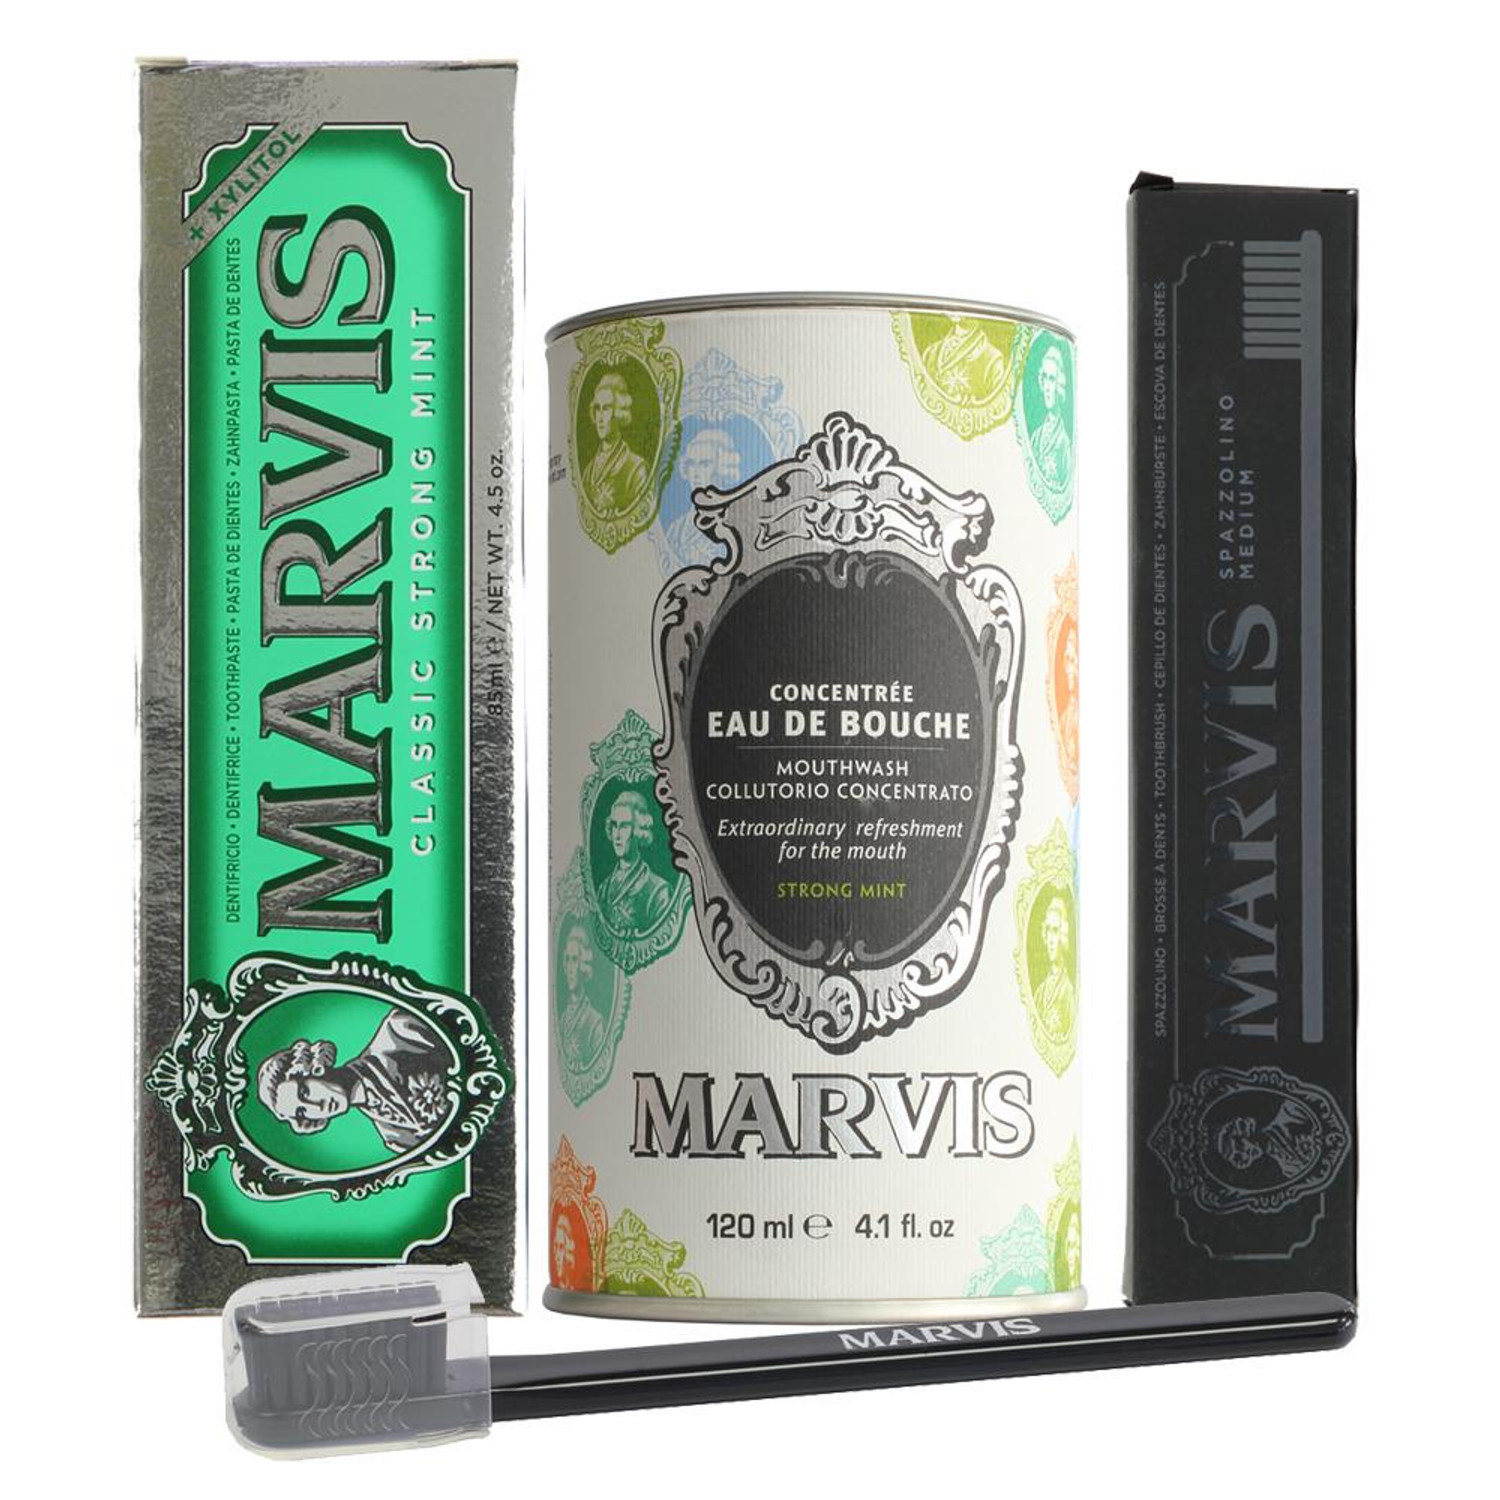 Marvis Mouthwash, Classic Mint Toothpaste & Black Tooth brush